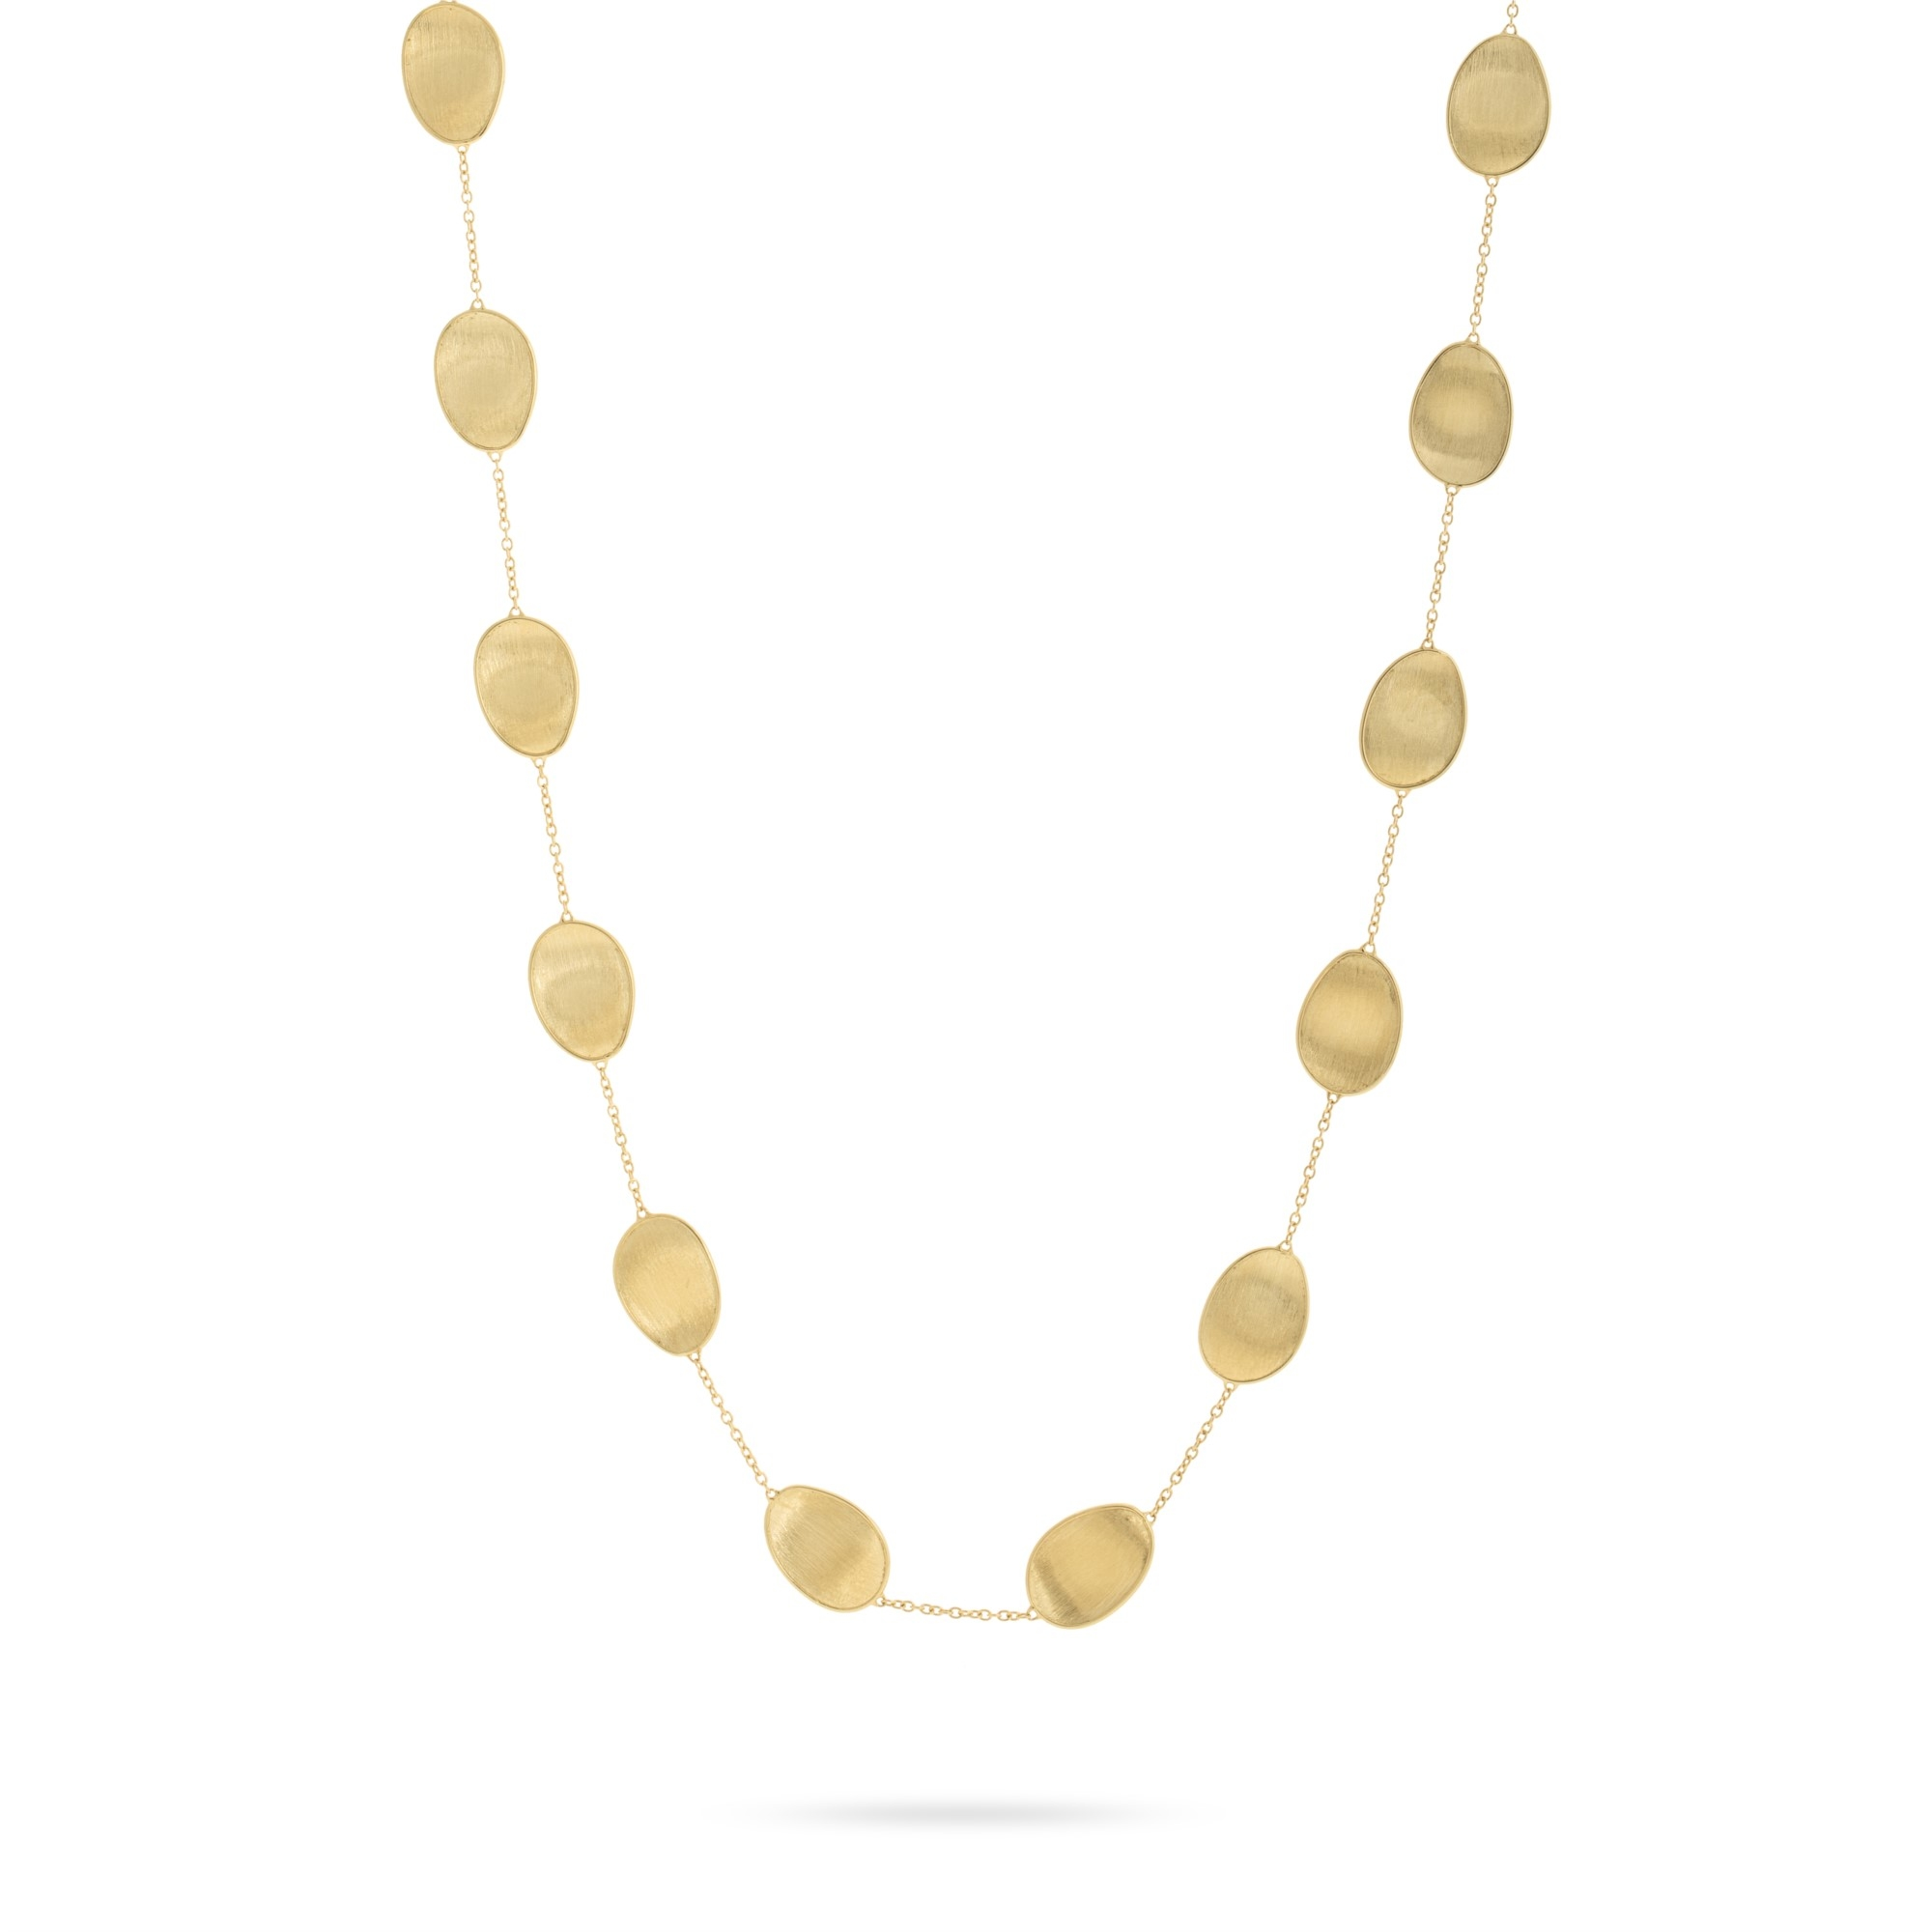 Marco Bicego 18K Yellow Gold    Gold Necklace CB2157 Y